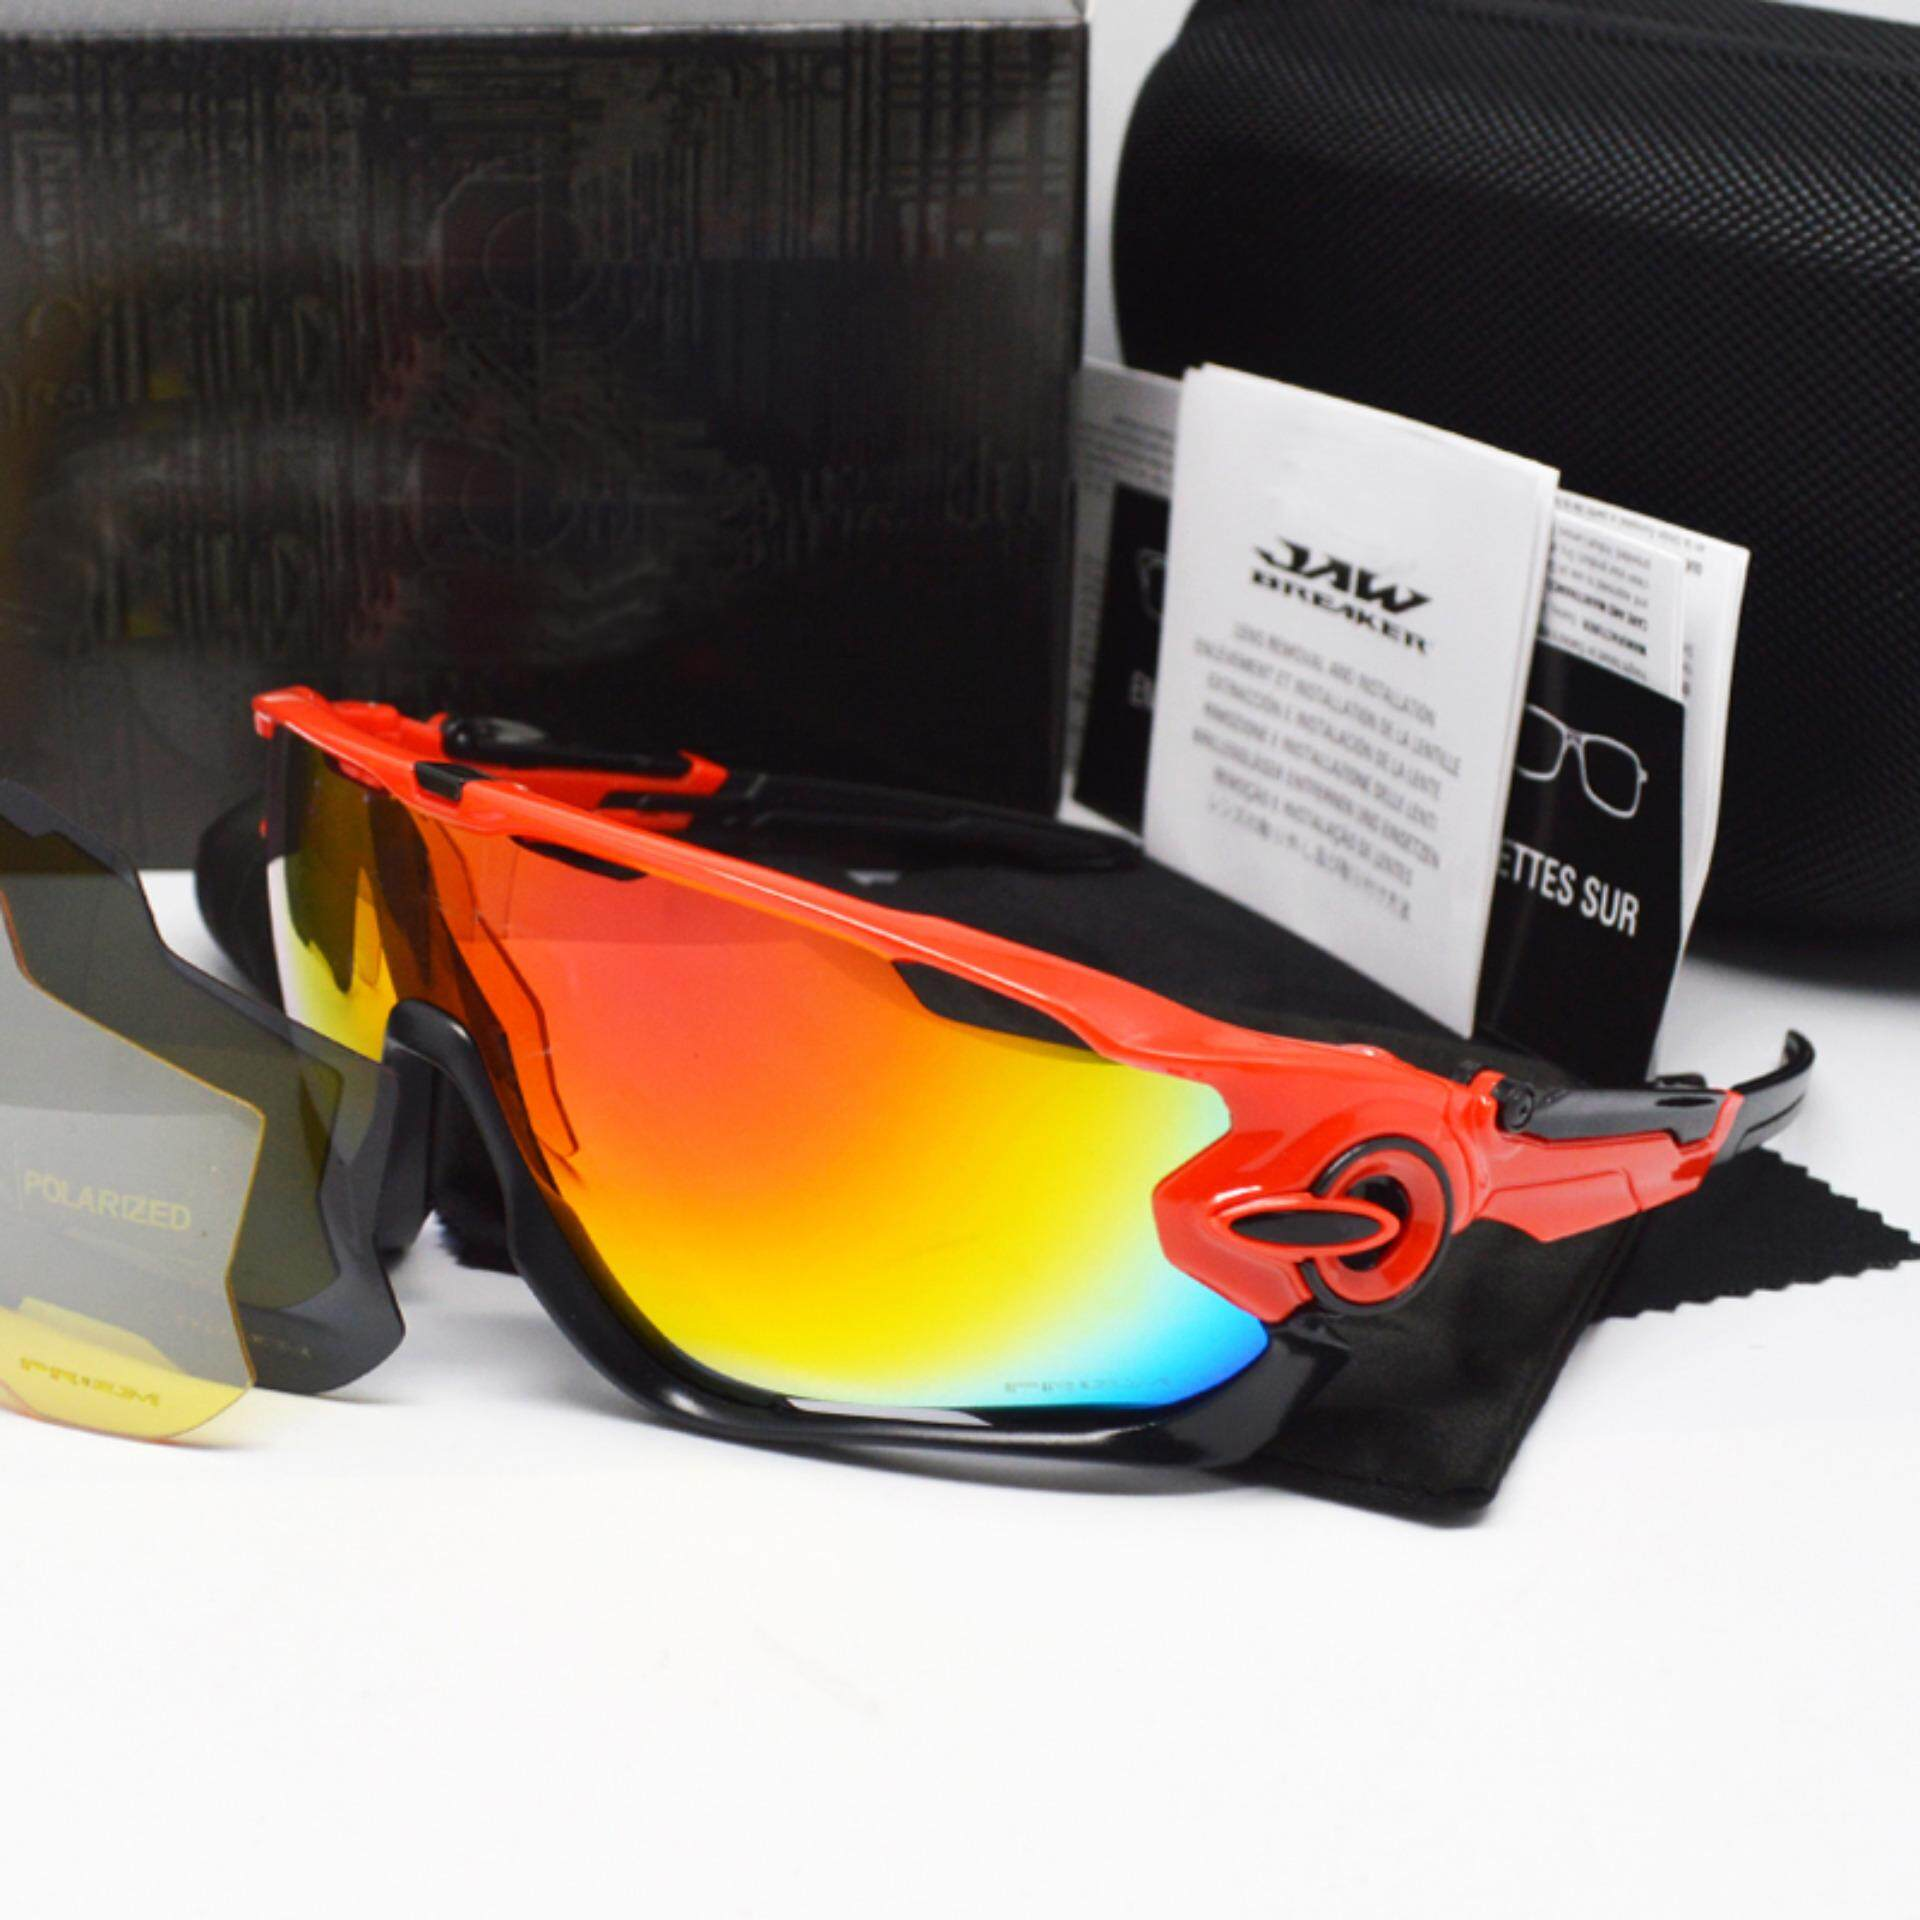 Jawbreaker riding glasses bike glasses polarized polarized 9270 - intl